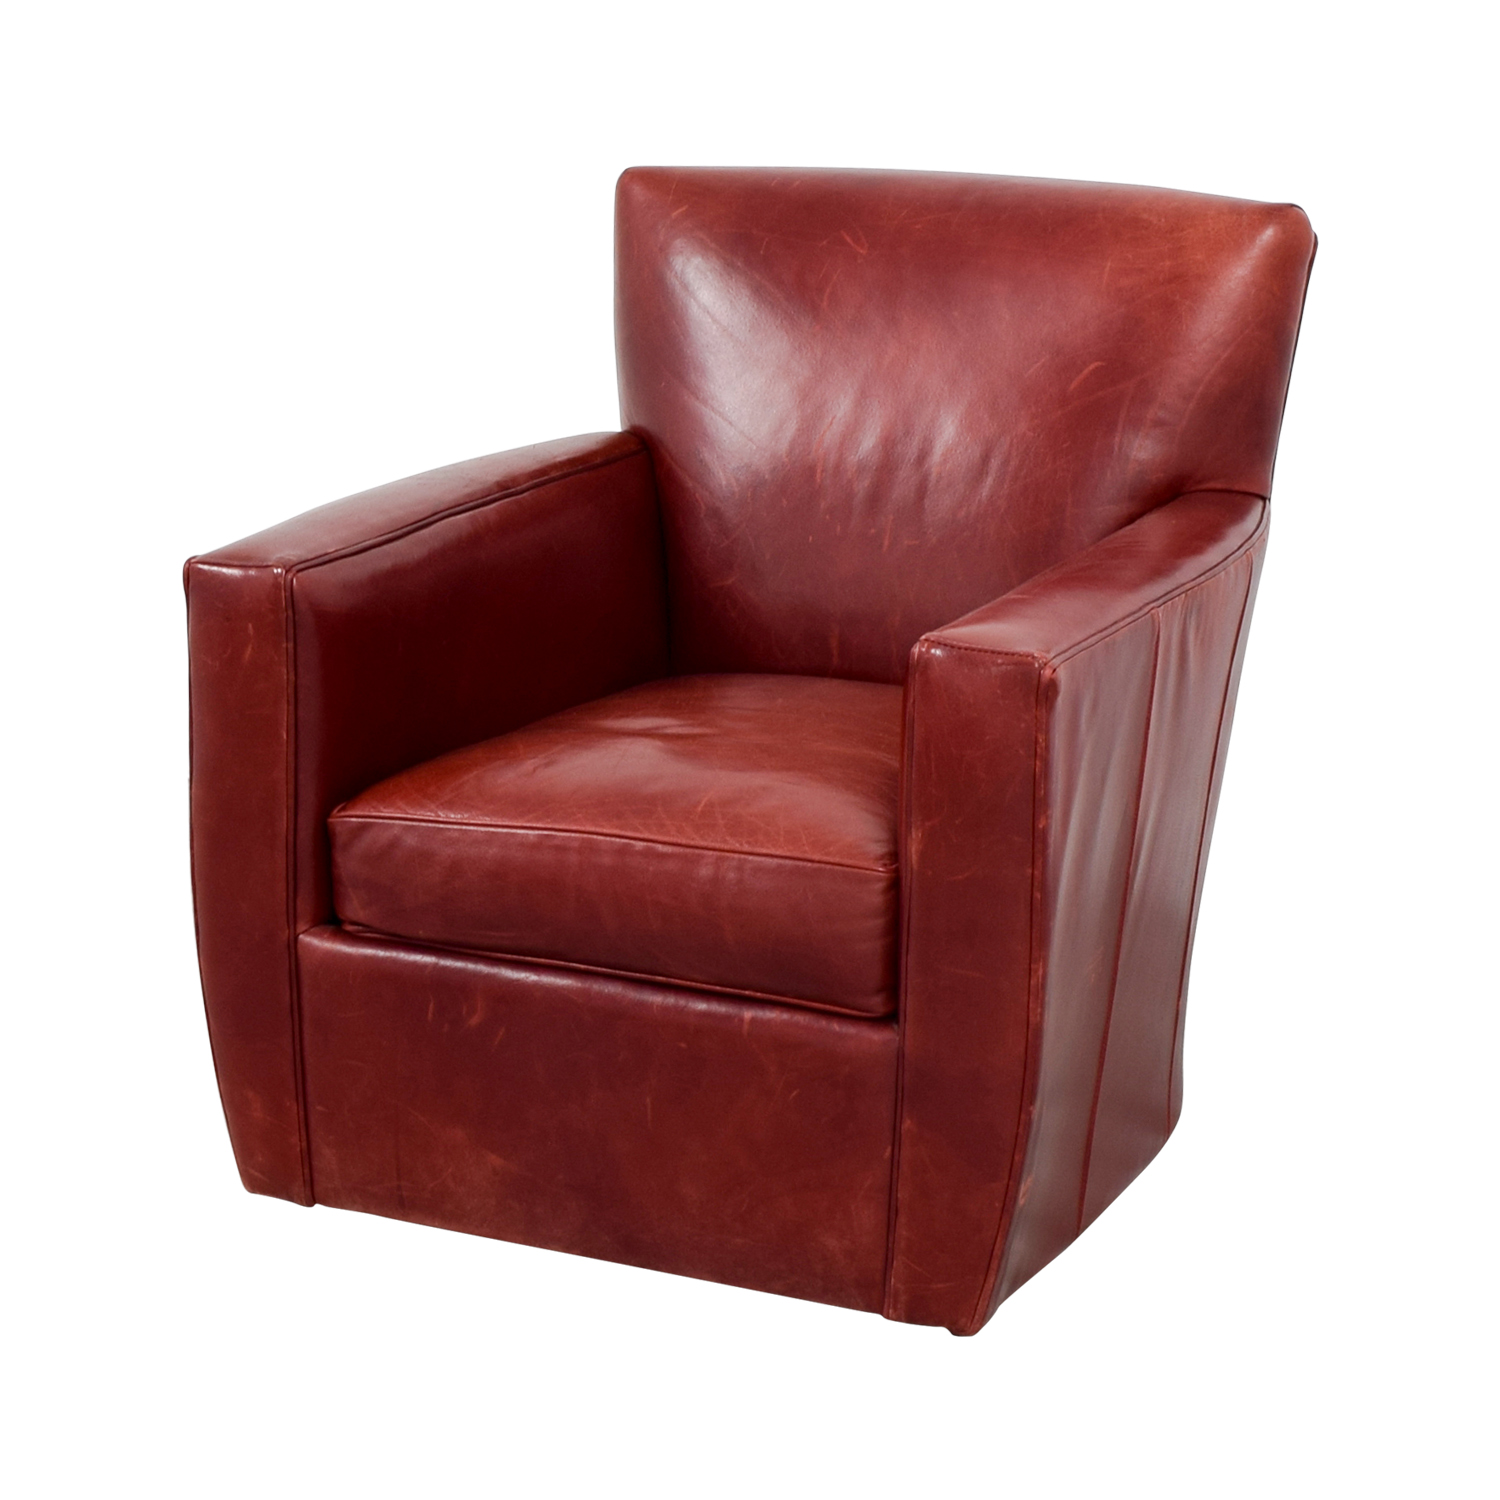 79 OFF  Crate  Barrel Crate  Barrel Leather Swivel